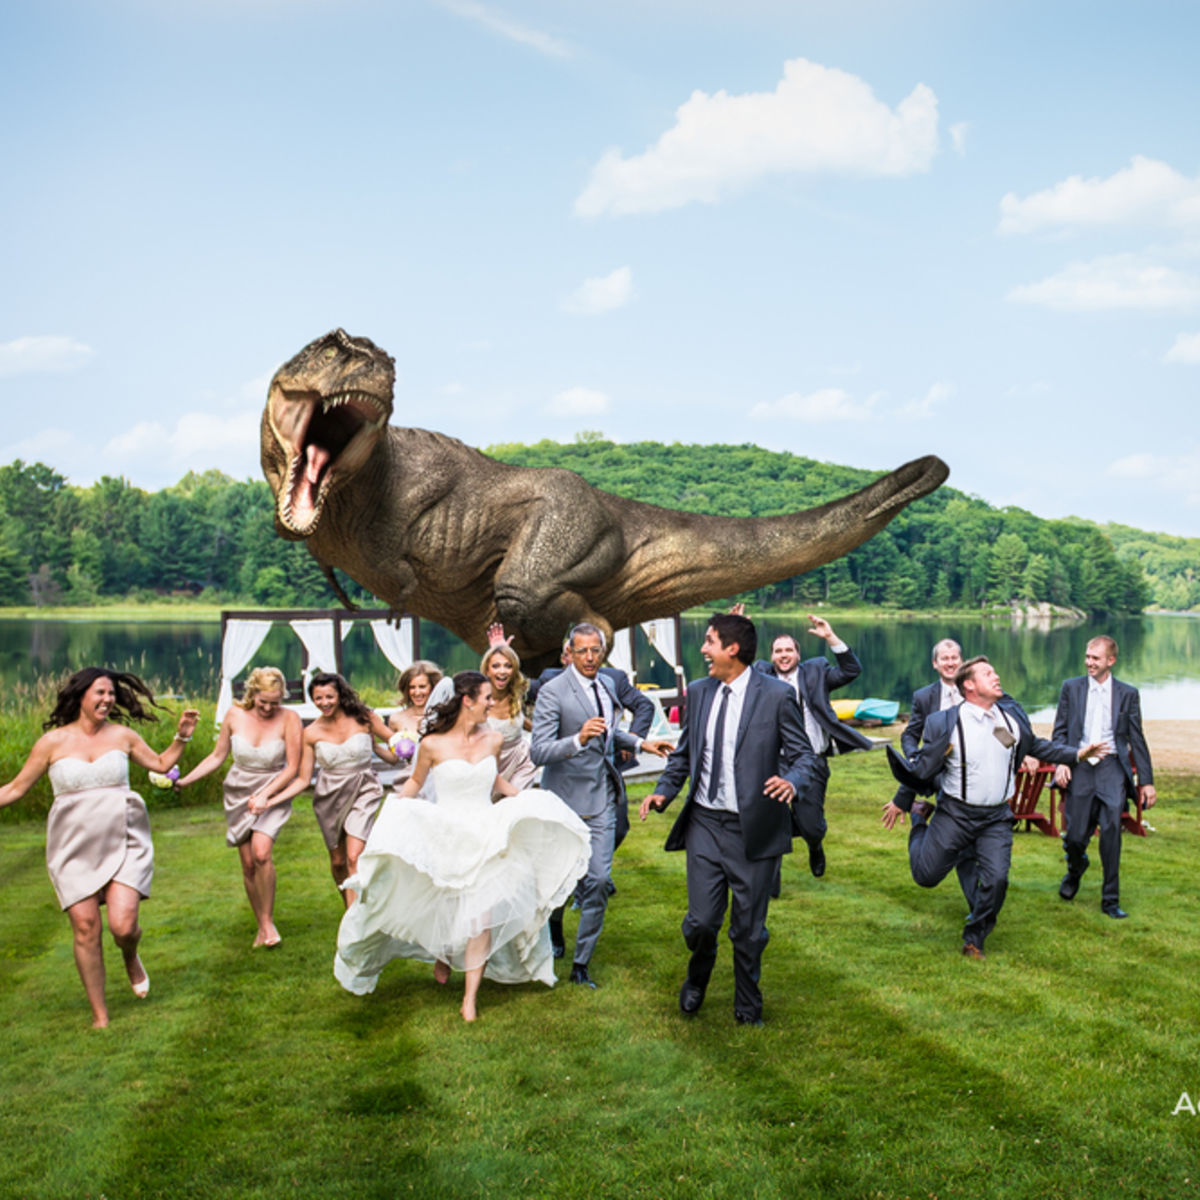 Jurassic Park Wedding v2 FACEBOOK.jpg